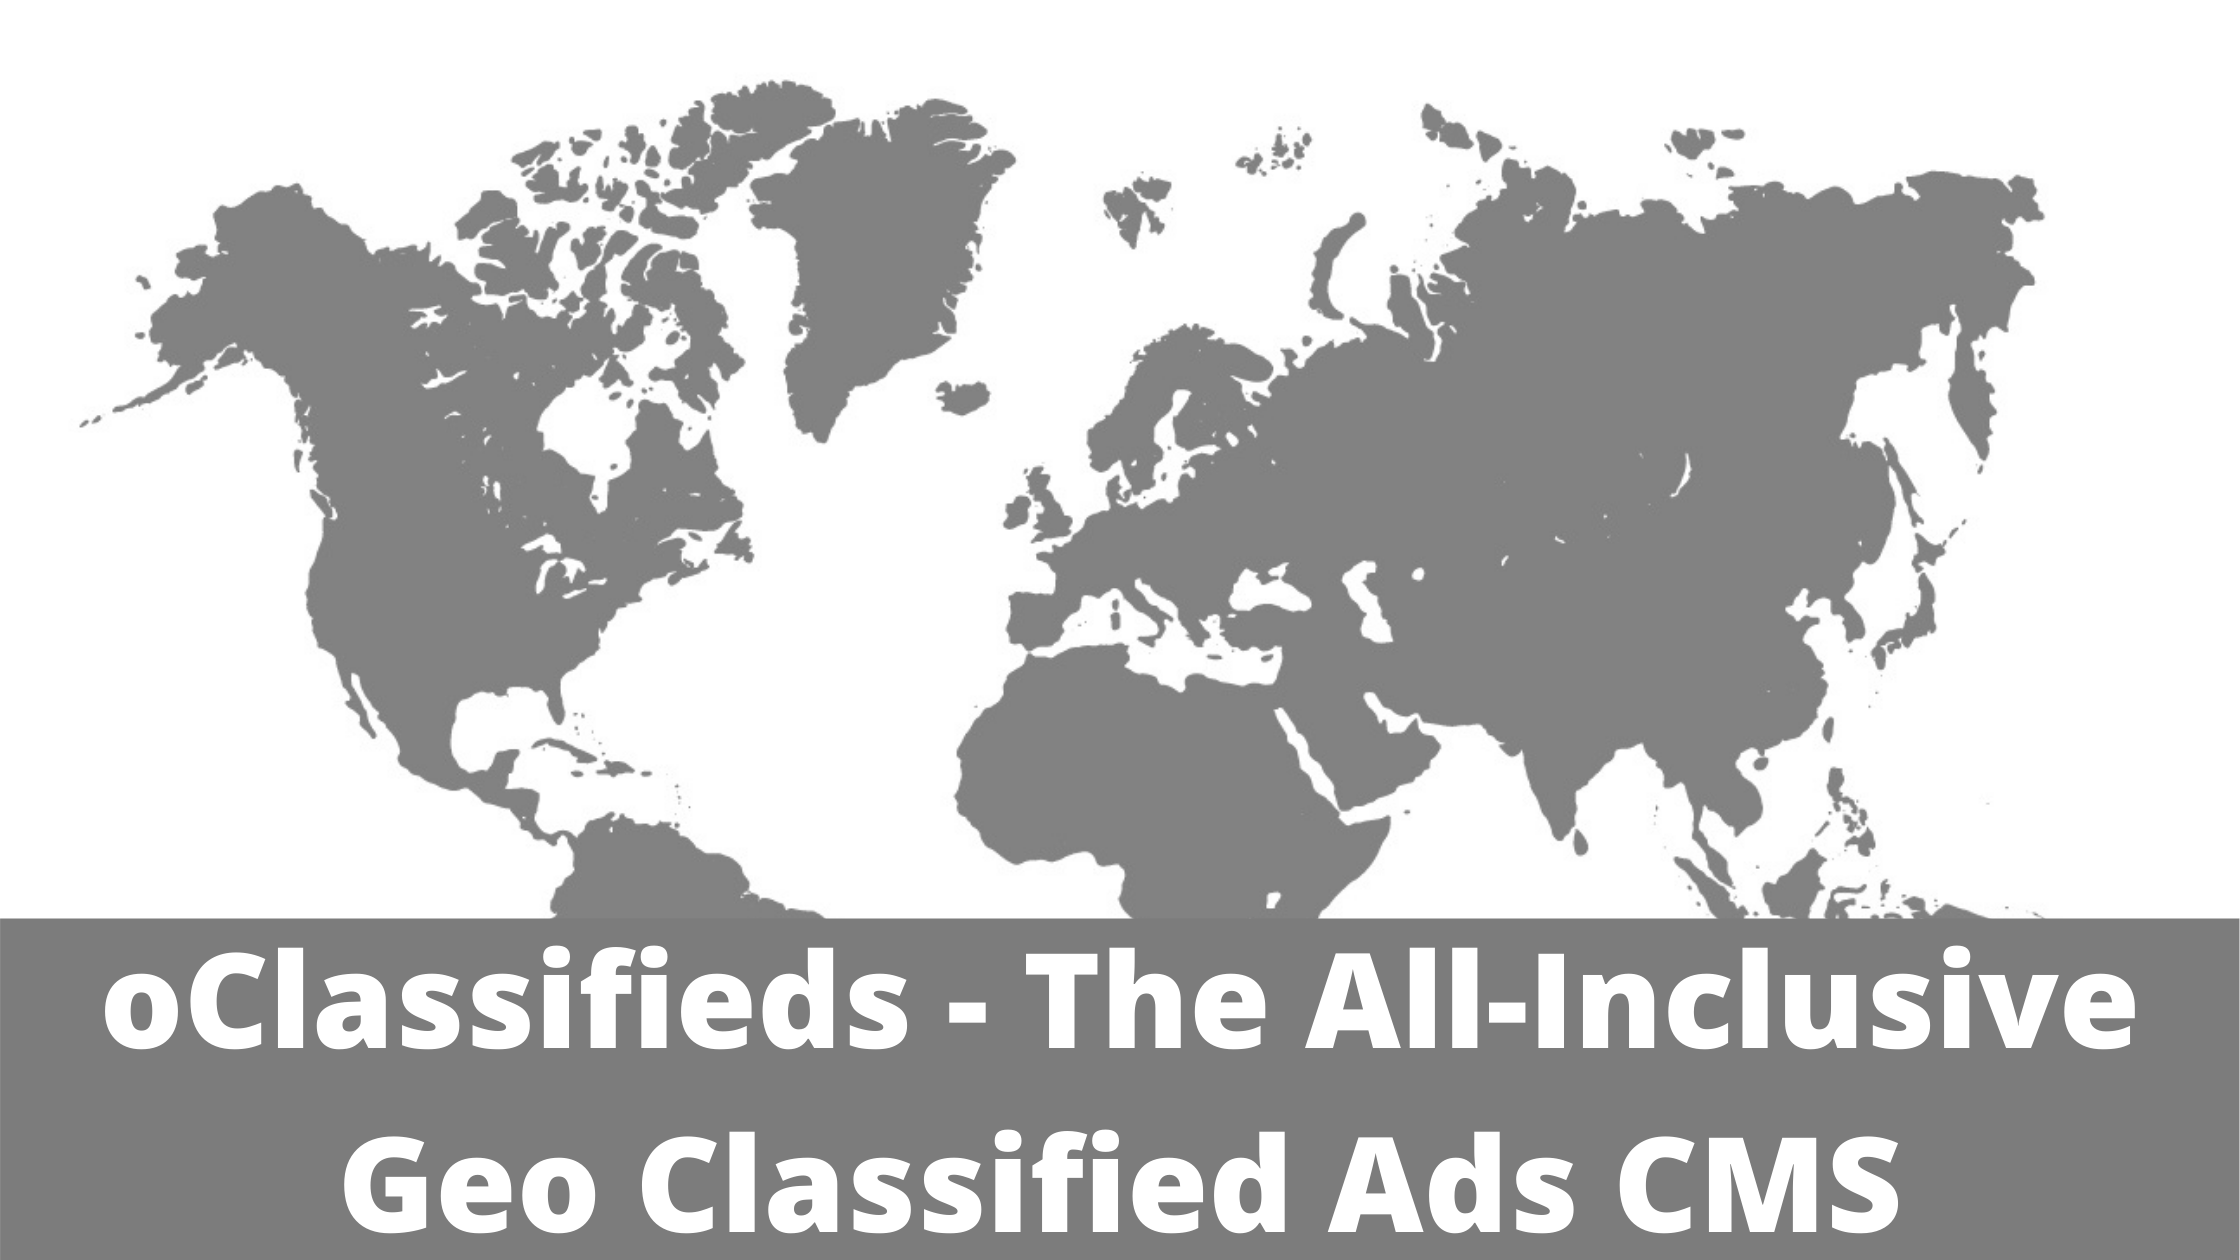 Best geo classified ads CMS